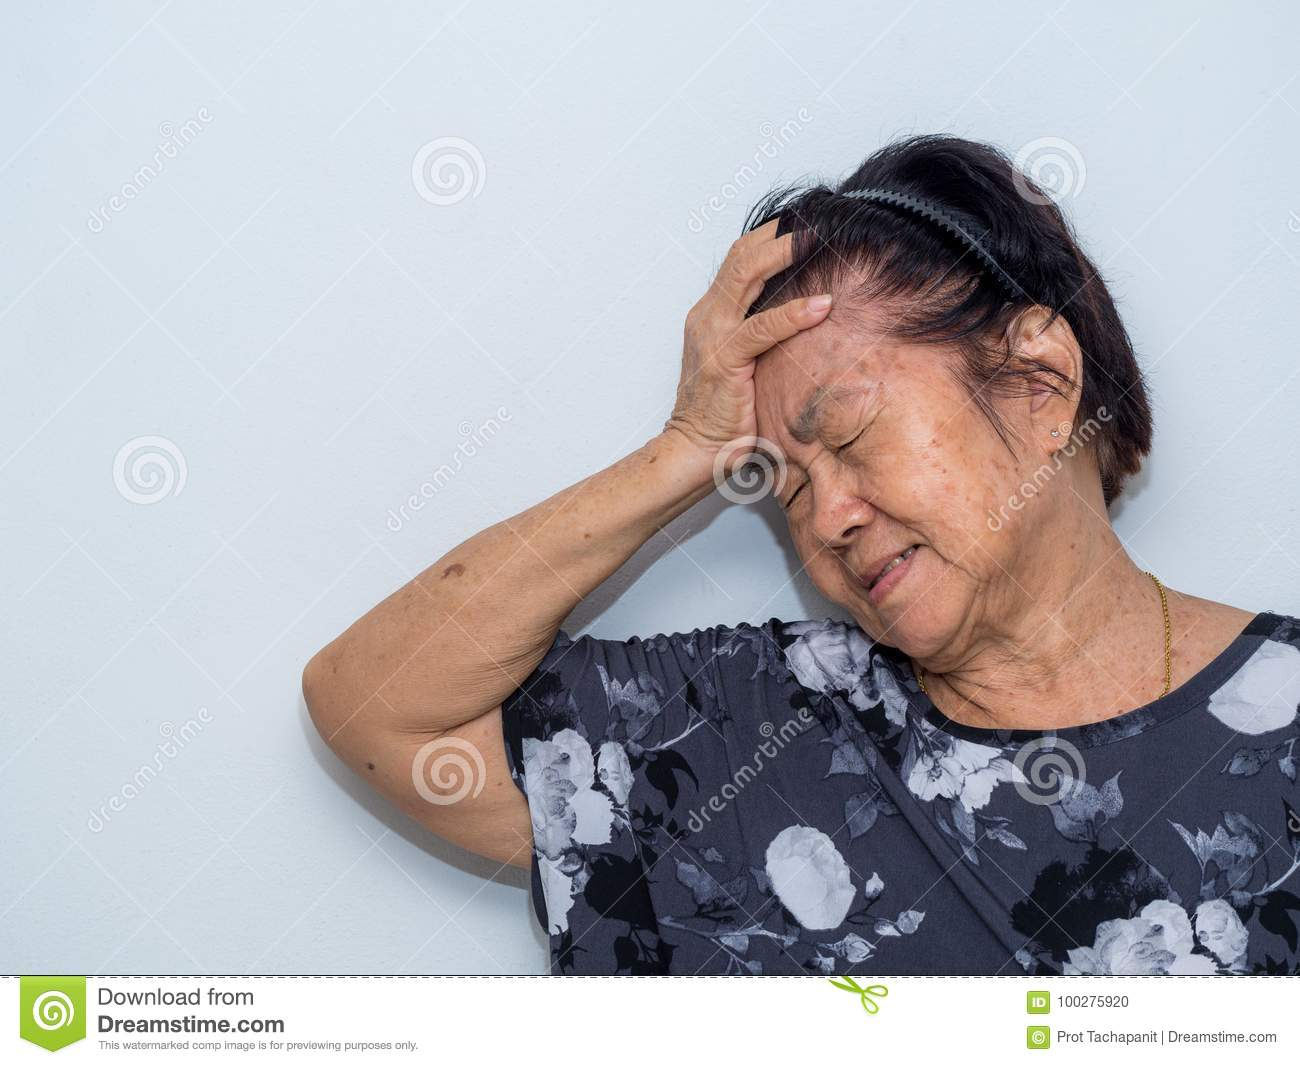 Old senior woman suffering and covering face with hands in headache and deep depression. emotional disorder, grief and desperation